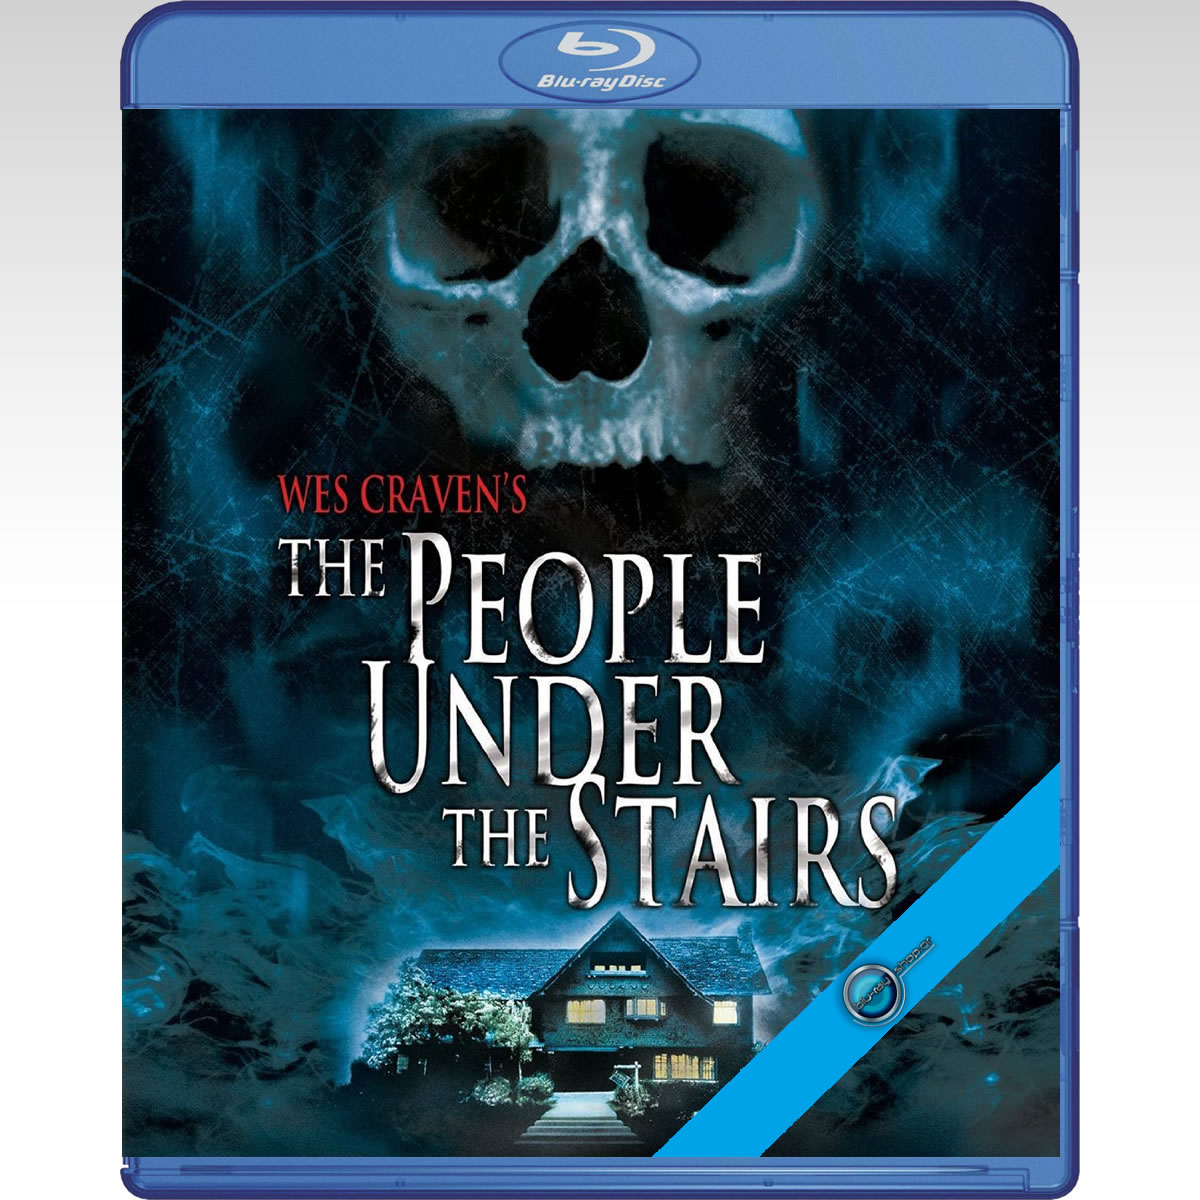 THE PEOPLE UNDER THE STAIRS [1991] - �� �������� ���� ��� ��� ������ [1991] (BLU-RAY)